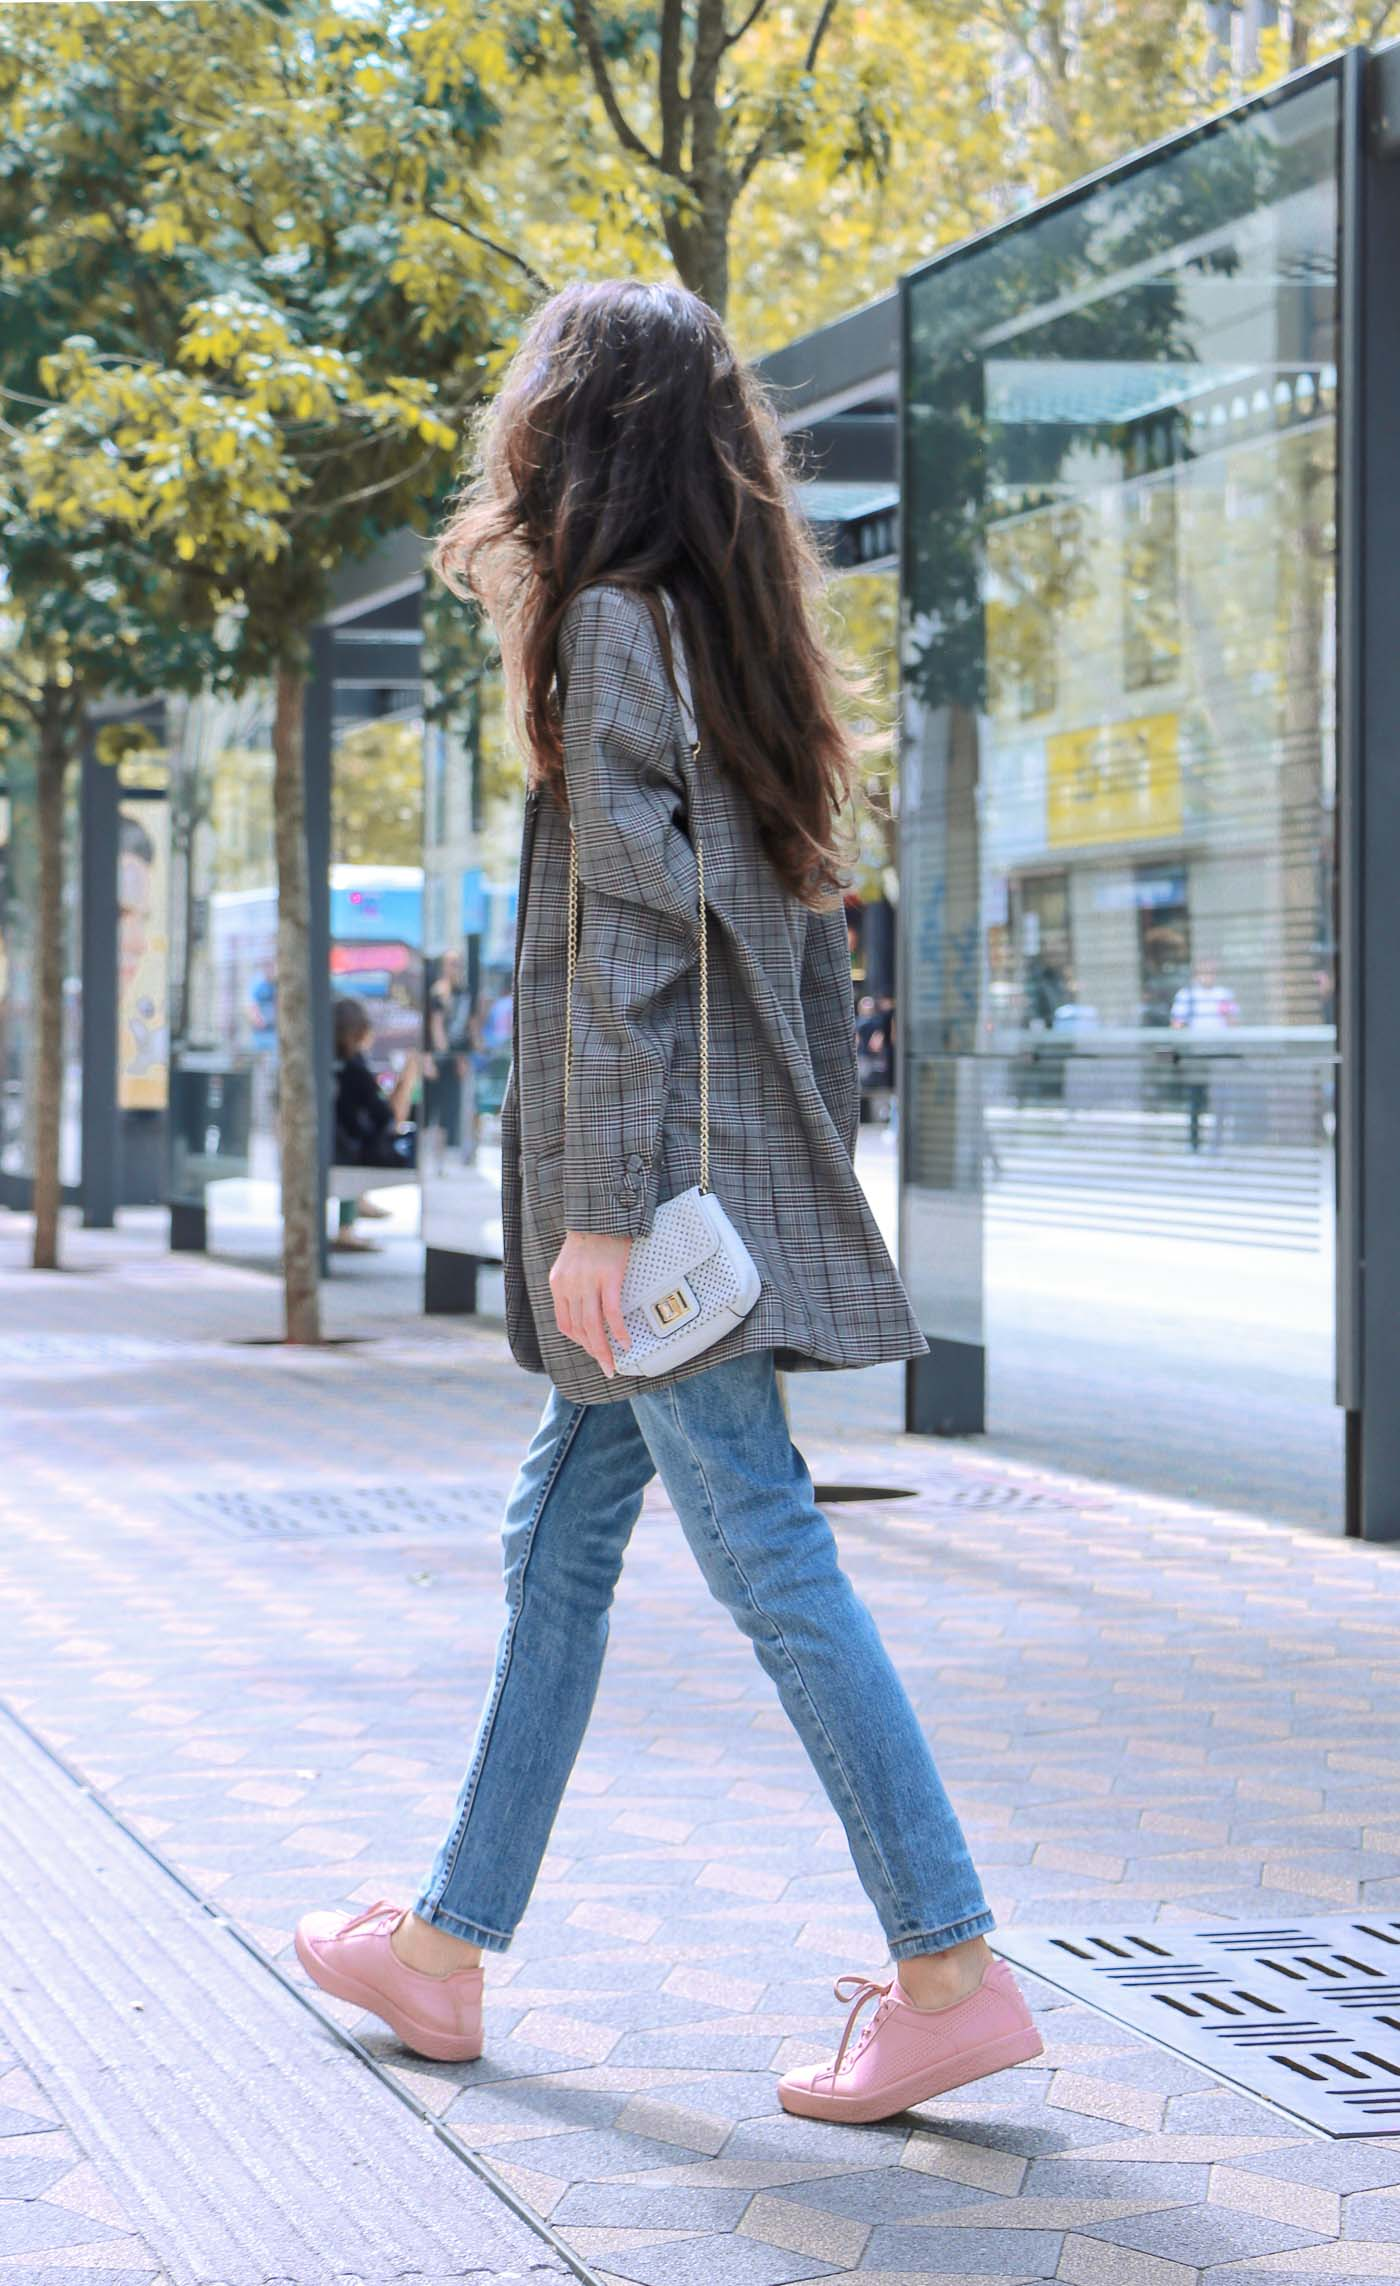 Fashion Blogger Veronika Lipar of Brunette from Wall Street on what to wear off-duty this fall